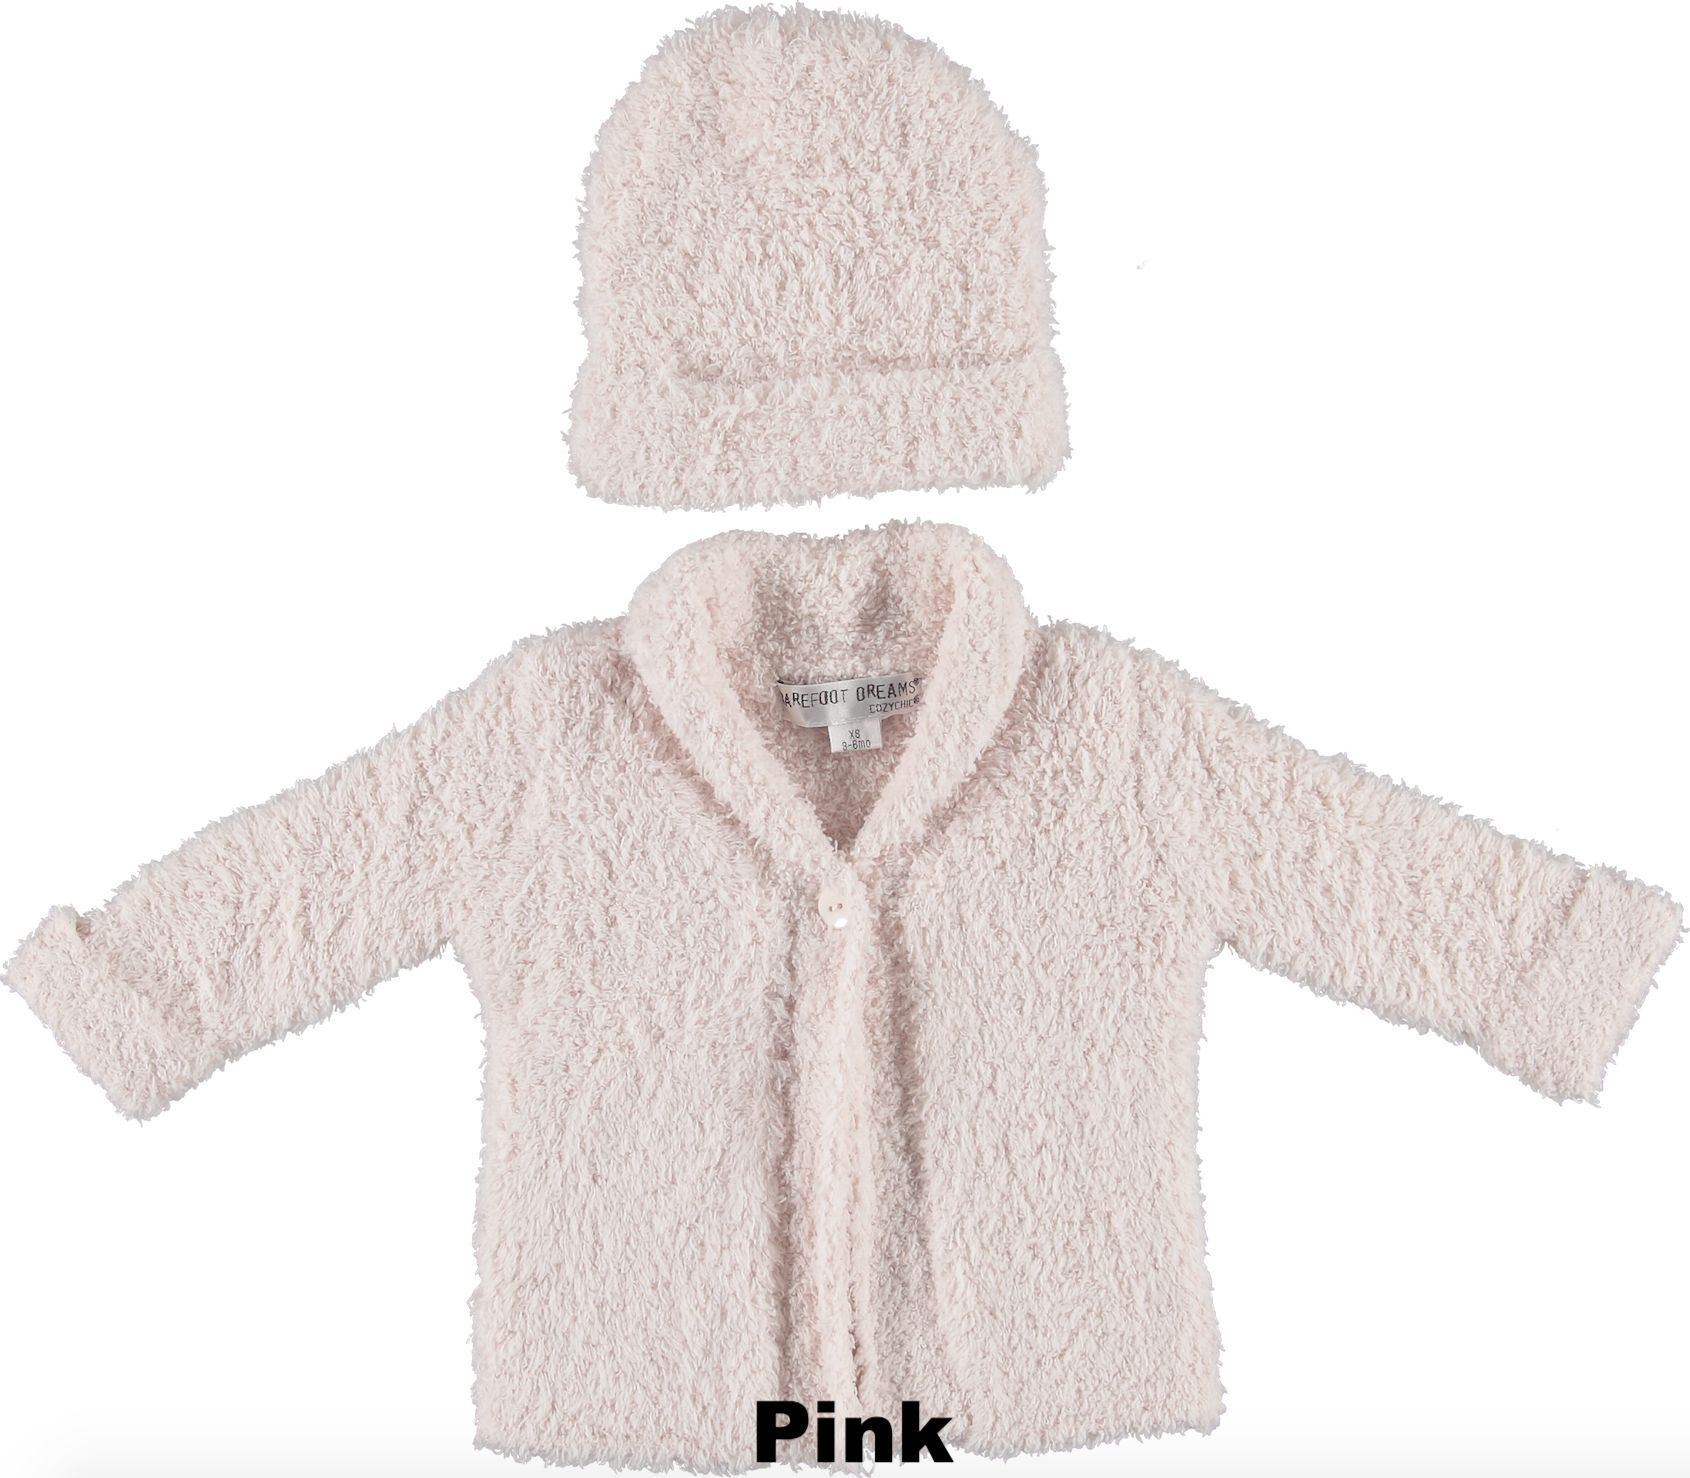 'CozyChic' Baby Cardigan and Hat